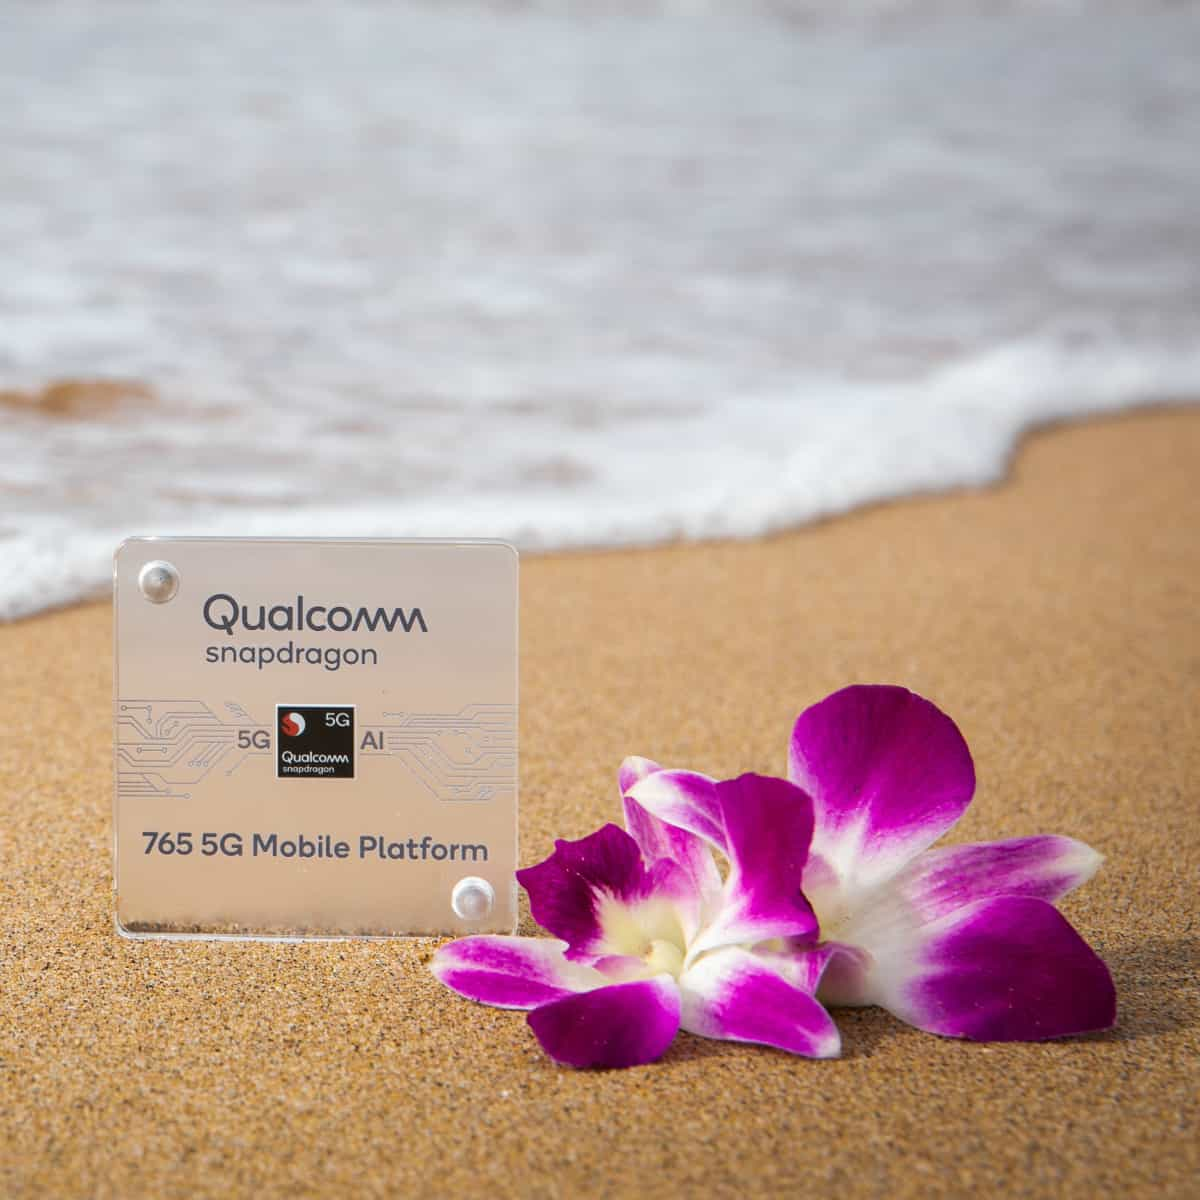 Our context-sensing tech on the Qualcomm® Snapdragon™ 765 Mobile Platform